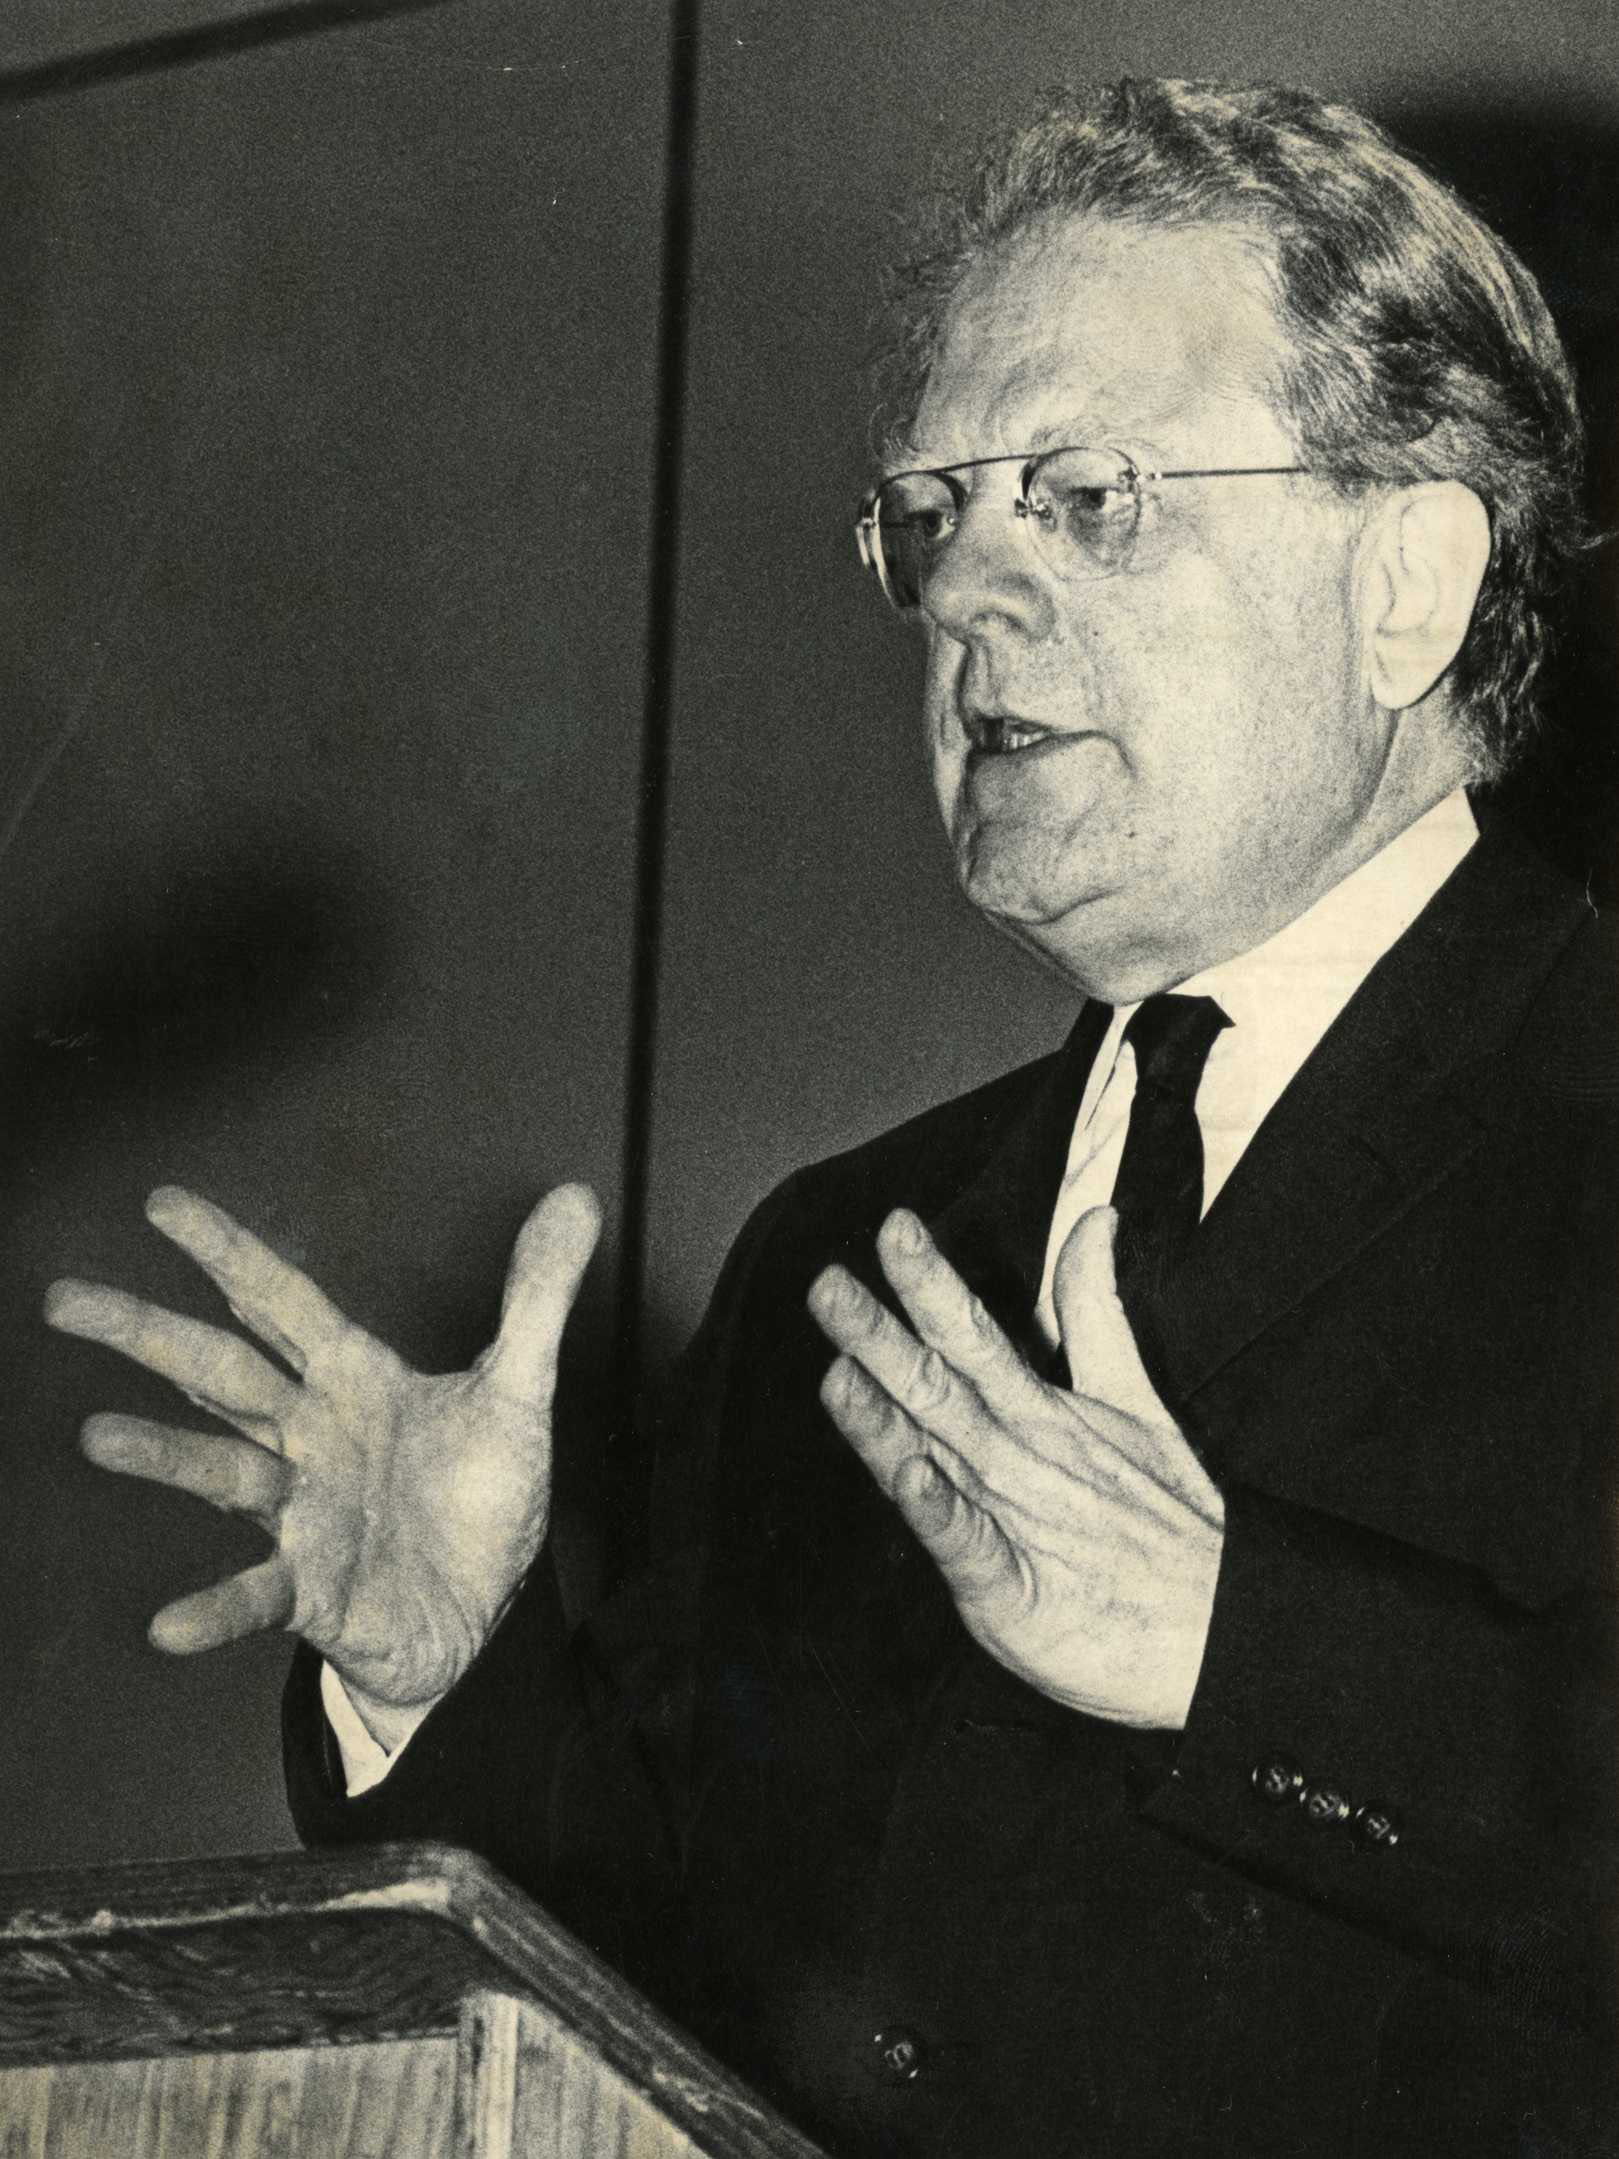 northrop frye first essay Striking out at the conception of criticism as restricted to mere opinion or ritual gesture, northrop frye wrote this magisterial work proceeding on the assumption.